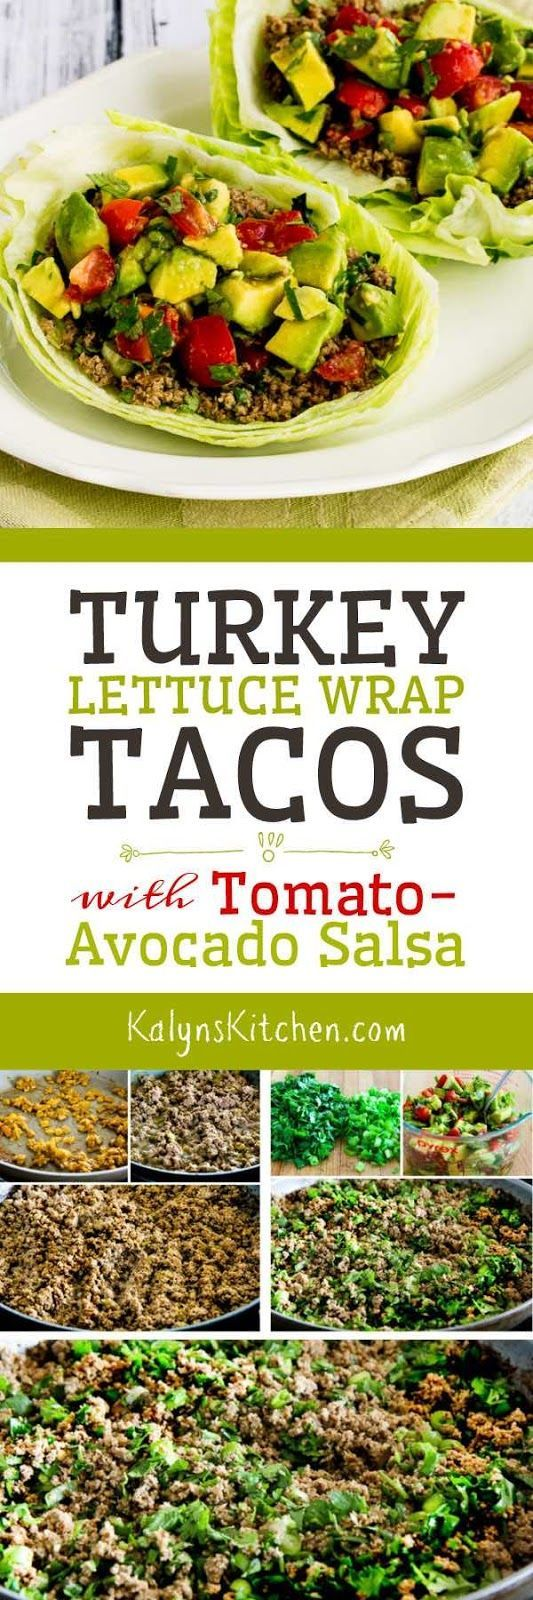 Turkey Lettuce Wrap Tacos with Tomato-Avocado Salsa